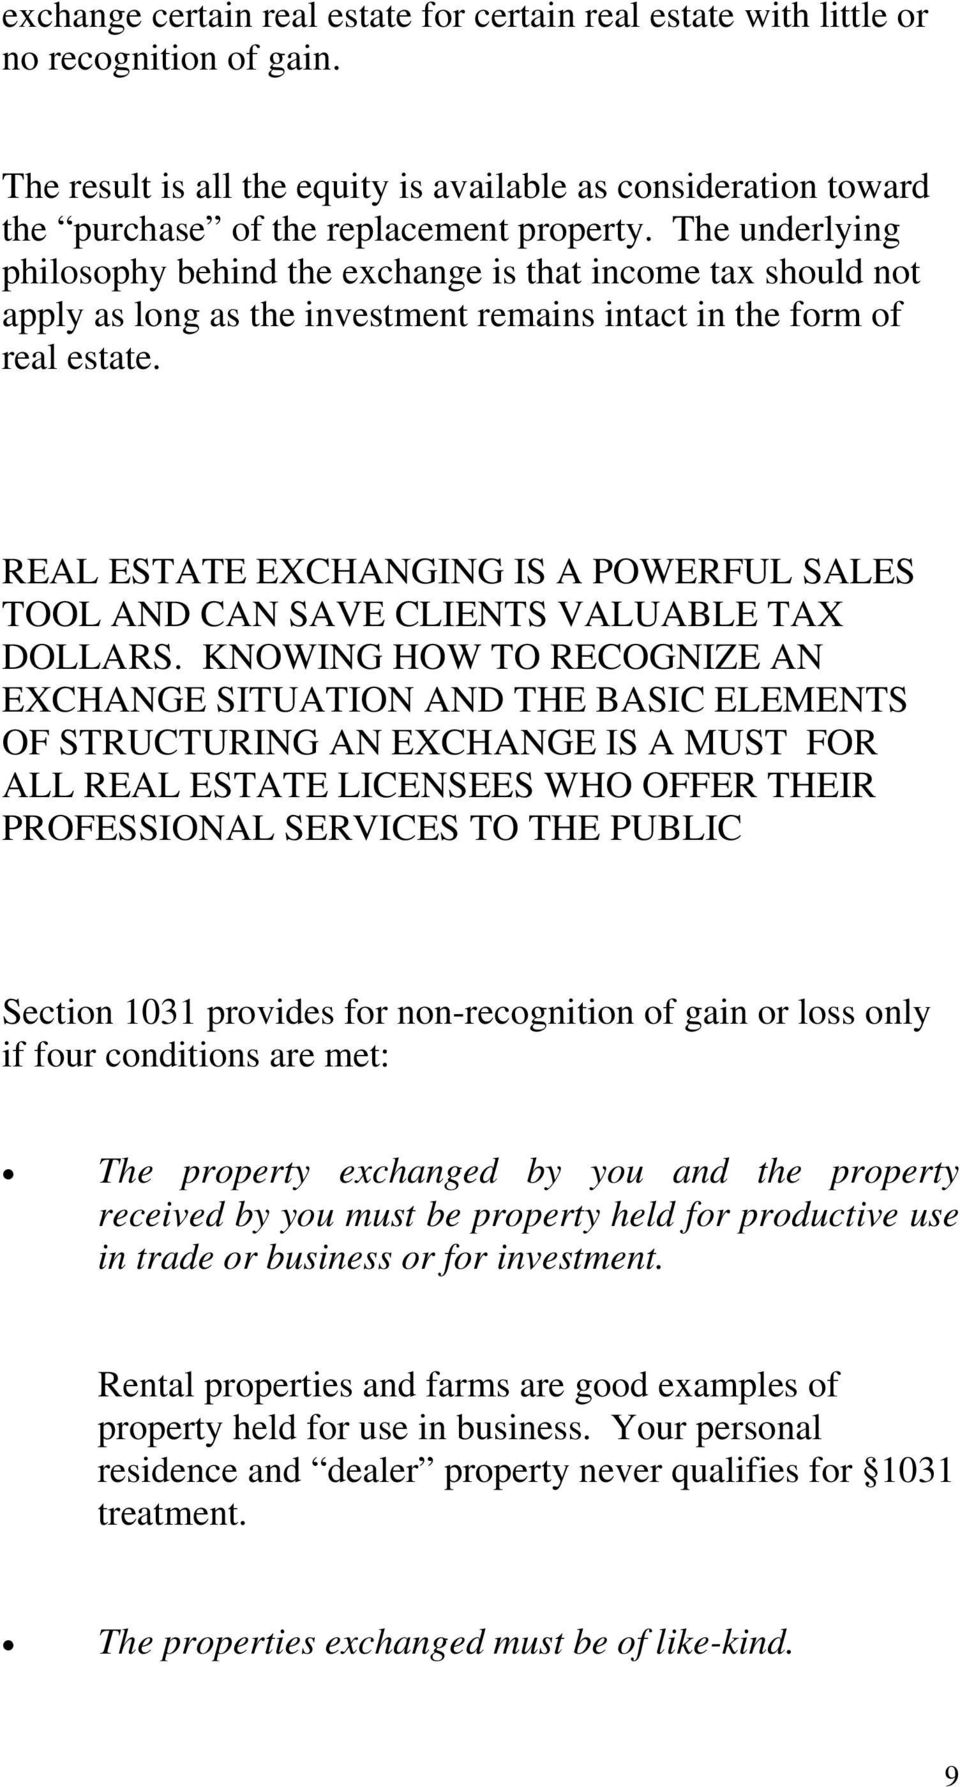 REAL ESTATE EXCHANGING IS A POWERFUL SALES TOOL AND CAN SAVE CLIENTS VALUABLE TAX DOLLARS.